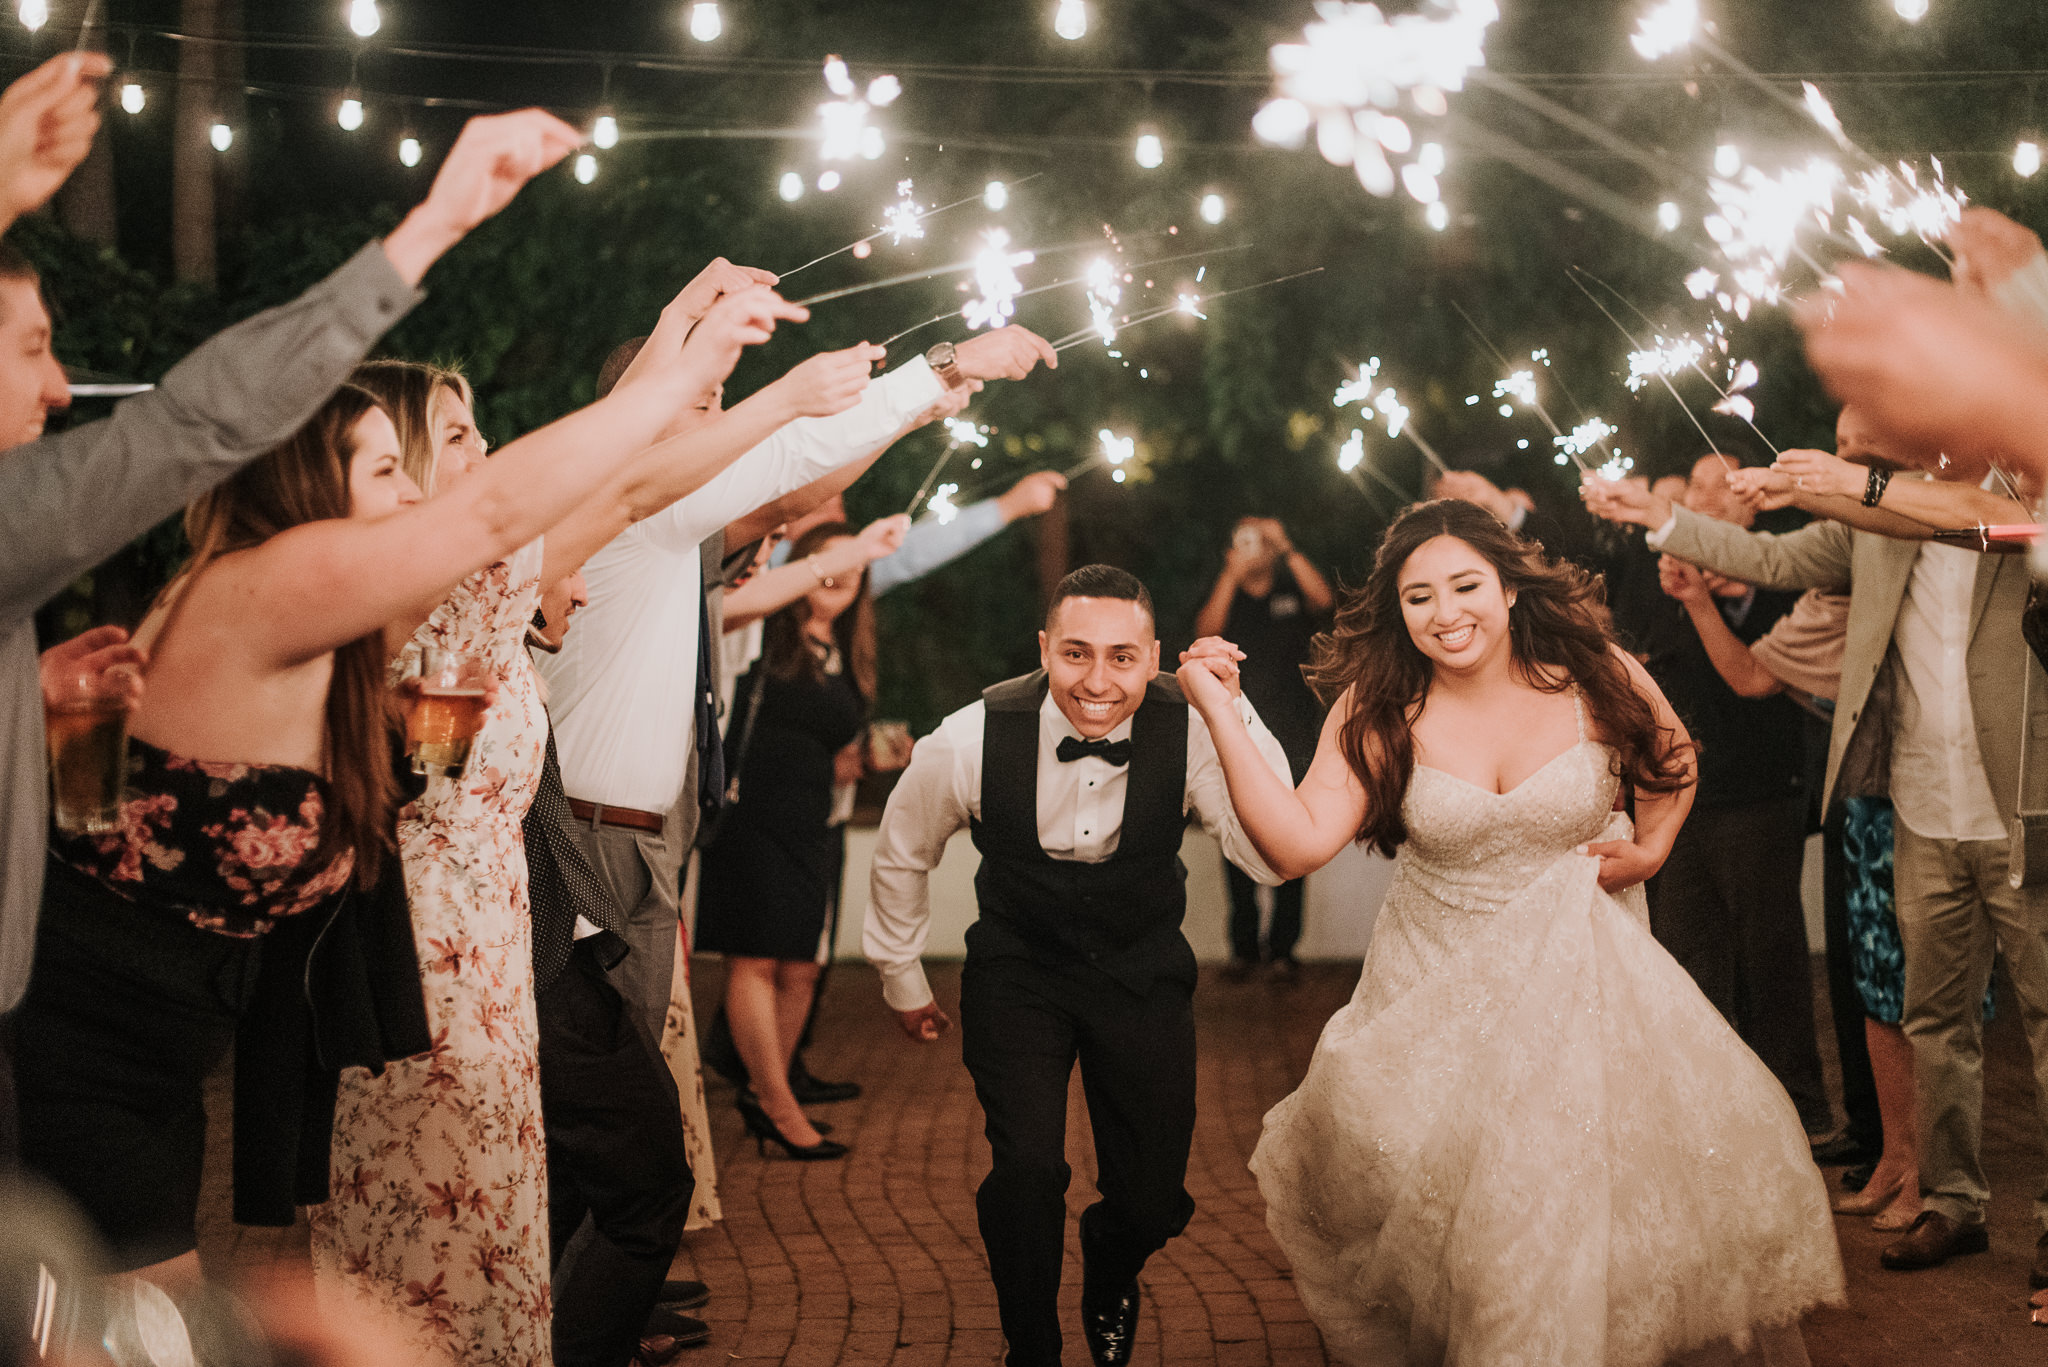 2019-04-05_Brittany_and_Nick_-_Married_-_San_Juan_Capistrano-167.jpg